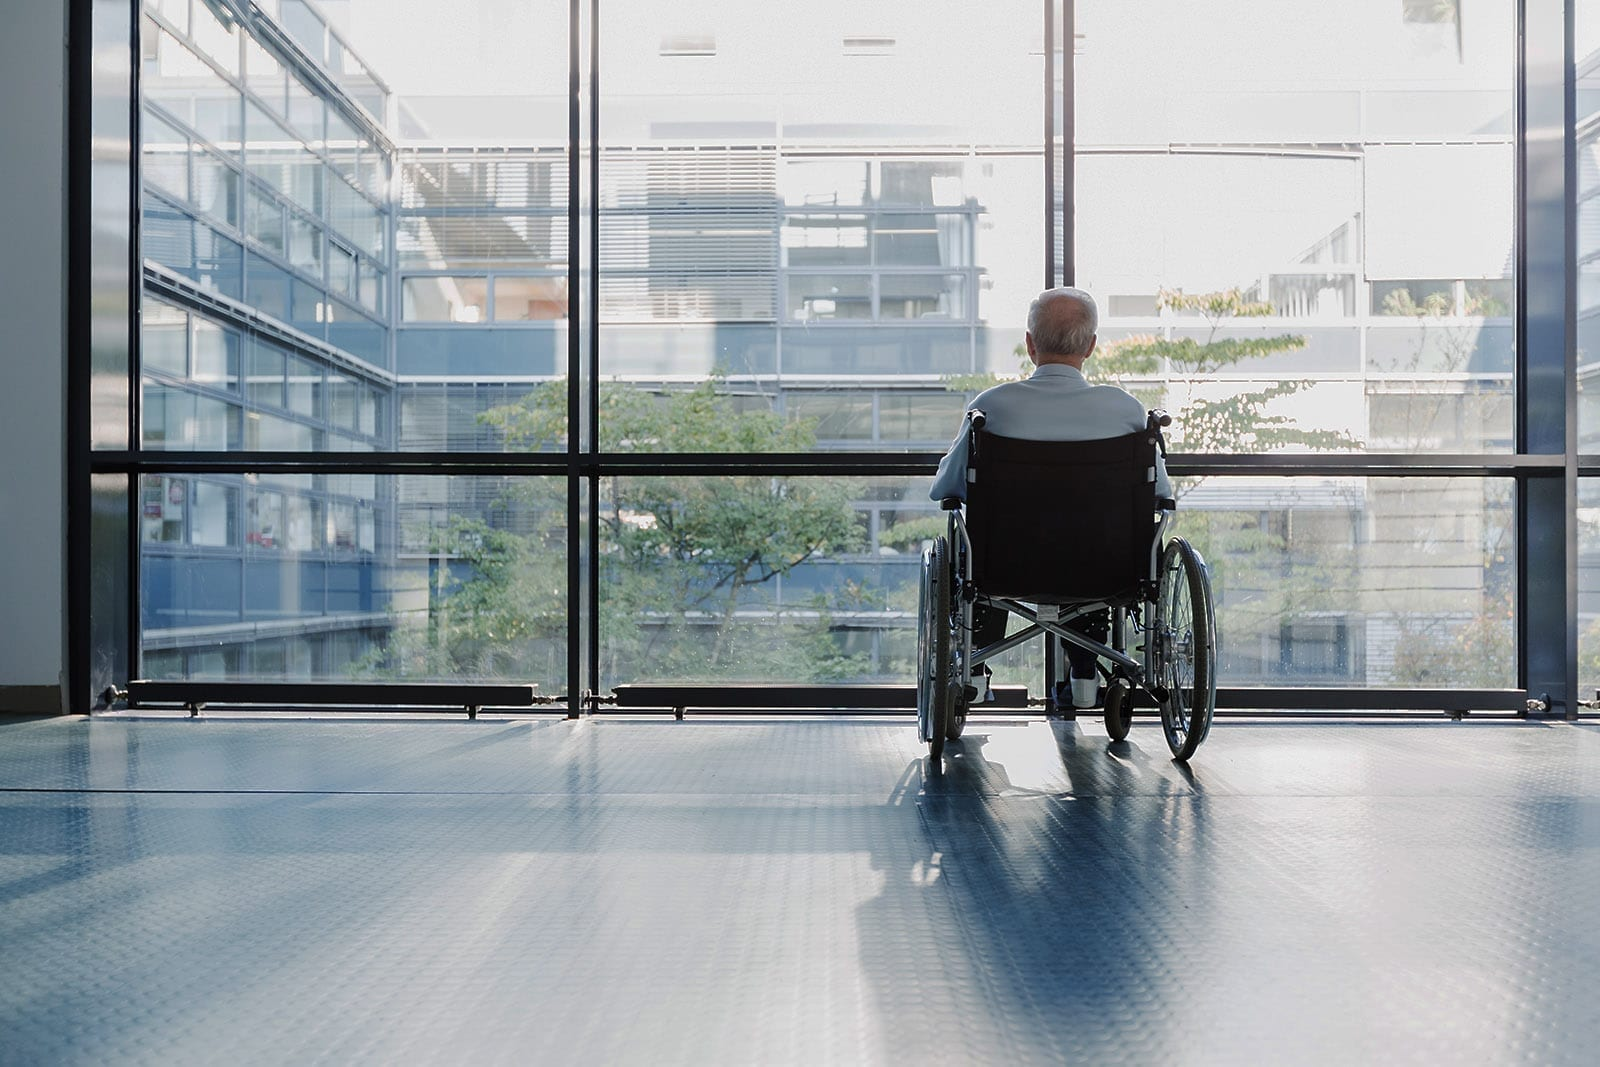 Senior Man in Wheelchair Looking Out Window